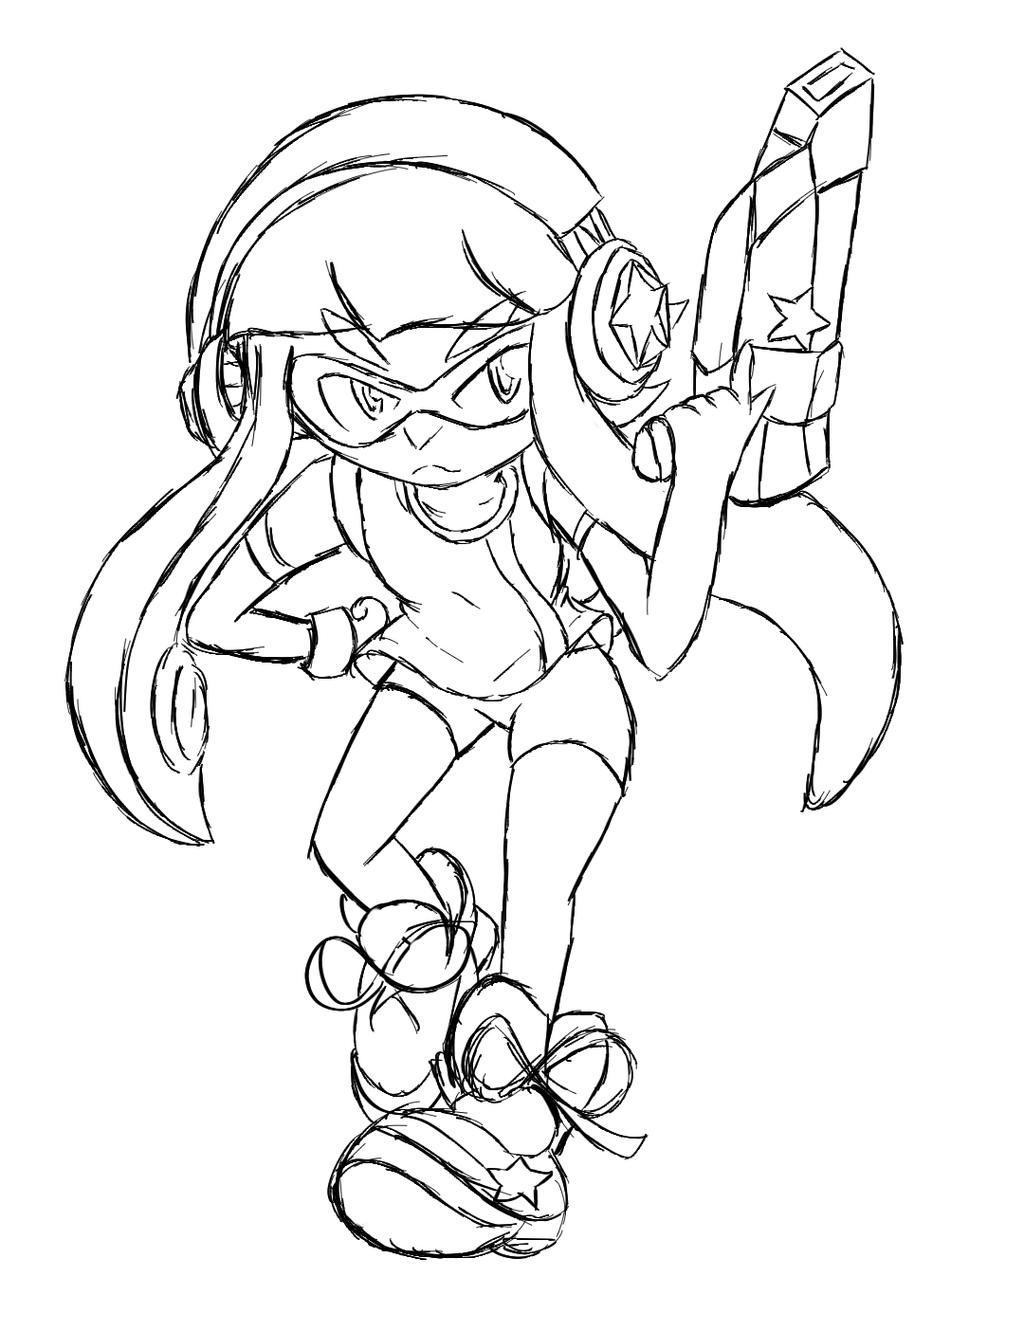 Splatoon Inkling Boy Coloring Page Coloring Pages